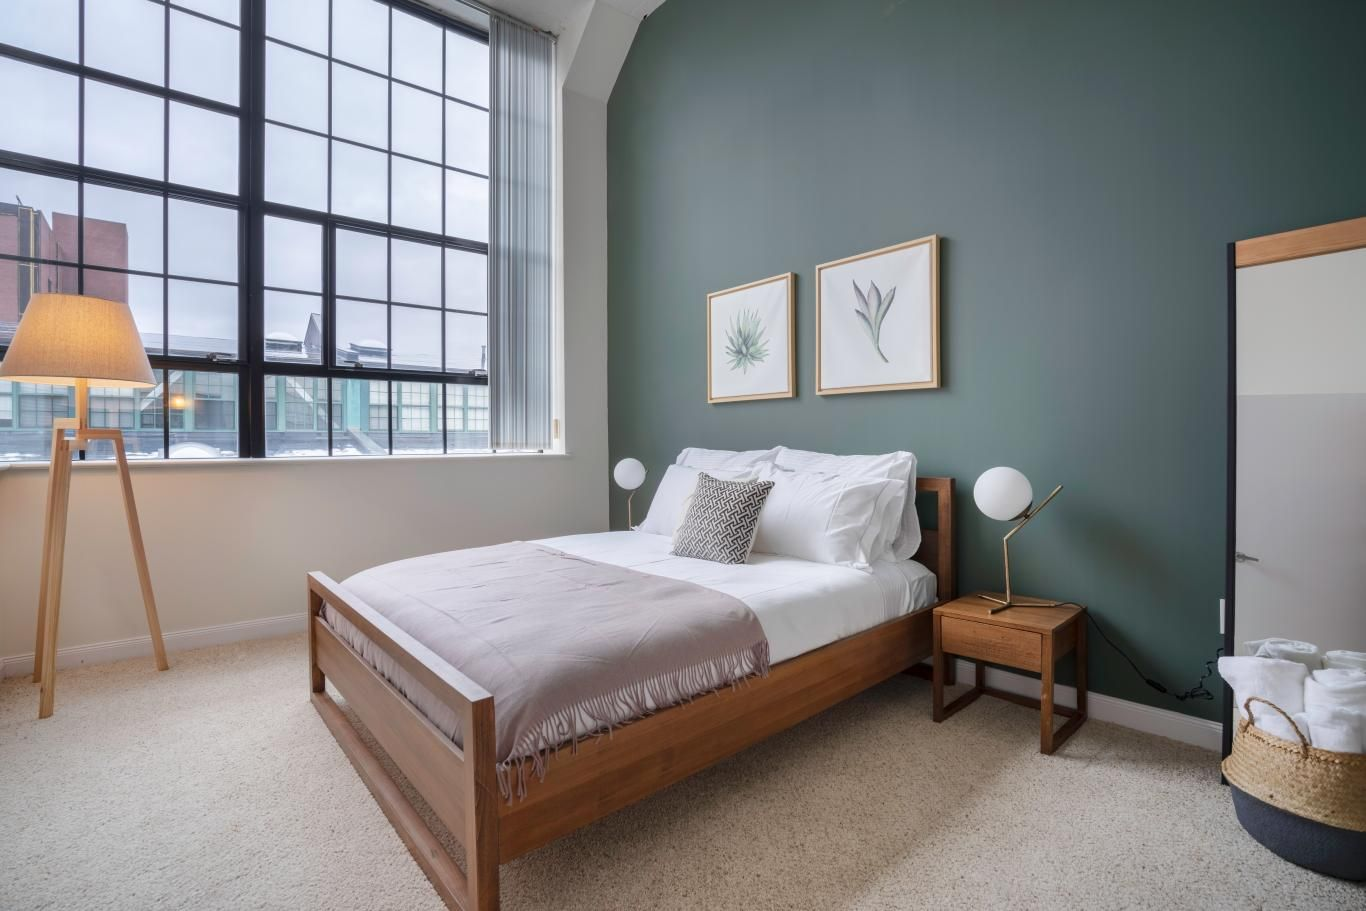 Mornings Here Are The Reason To Wake Up Early 2bedroom Furnished Apartment For Rent I Furnished Apartments For Rent Apartments For Rent Furnished Apartment